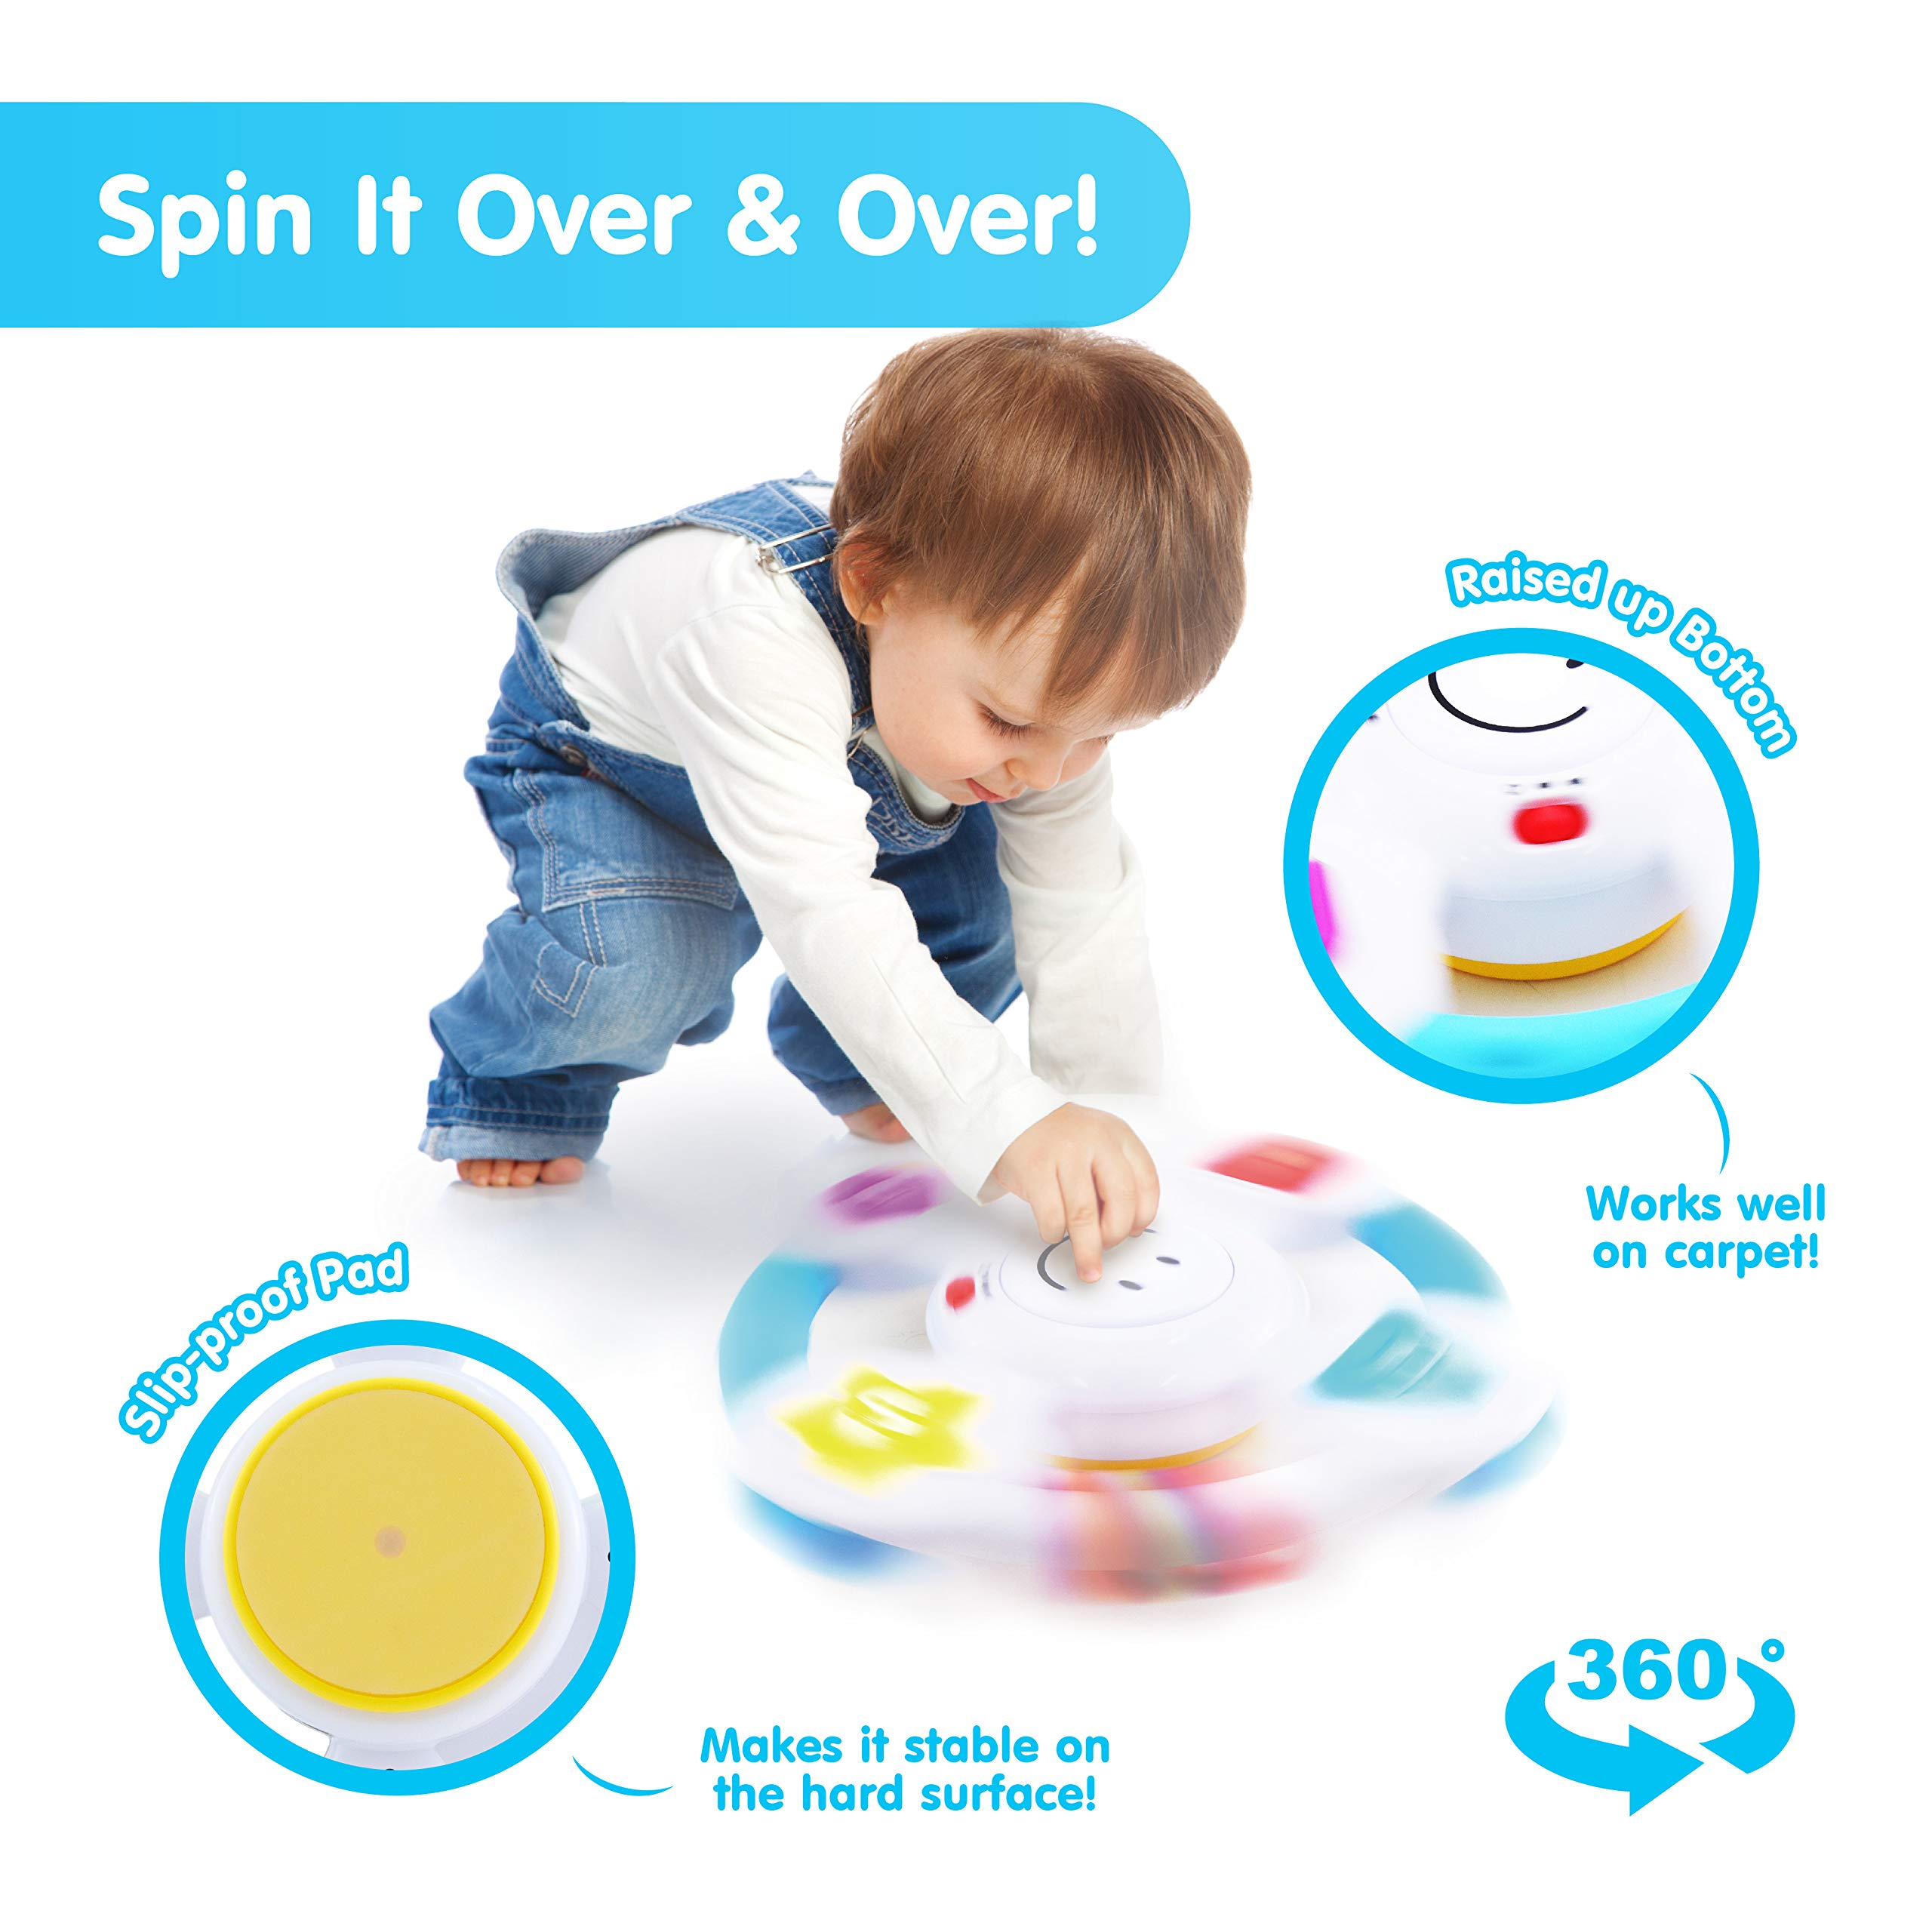 BEST LEARNING My Spin & Learn Steering Wheel - Interactive Educational Light-Up Toddler Toys for 6-36 Months Old Infants & Toddlers - Colors, Shapes, Emotions & Music Game for Babies by BEST LEARNING (Image #3)